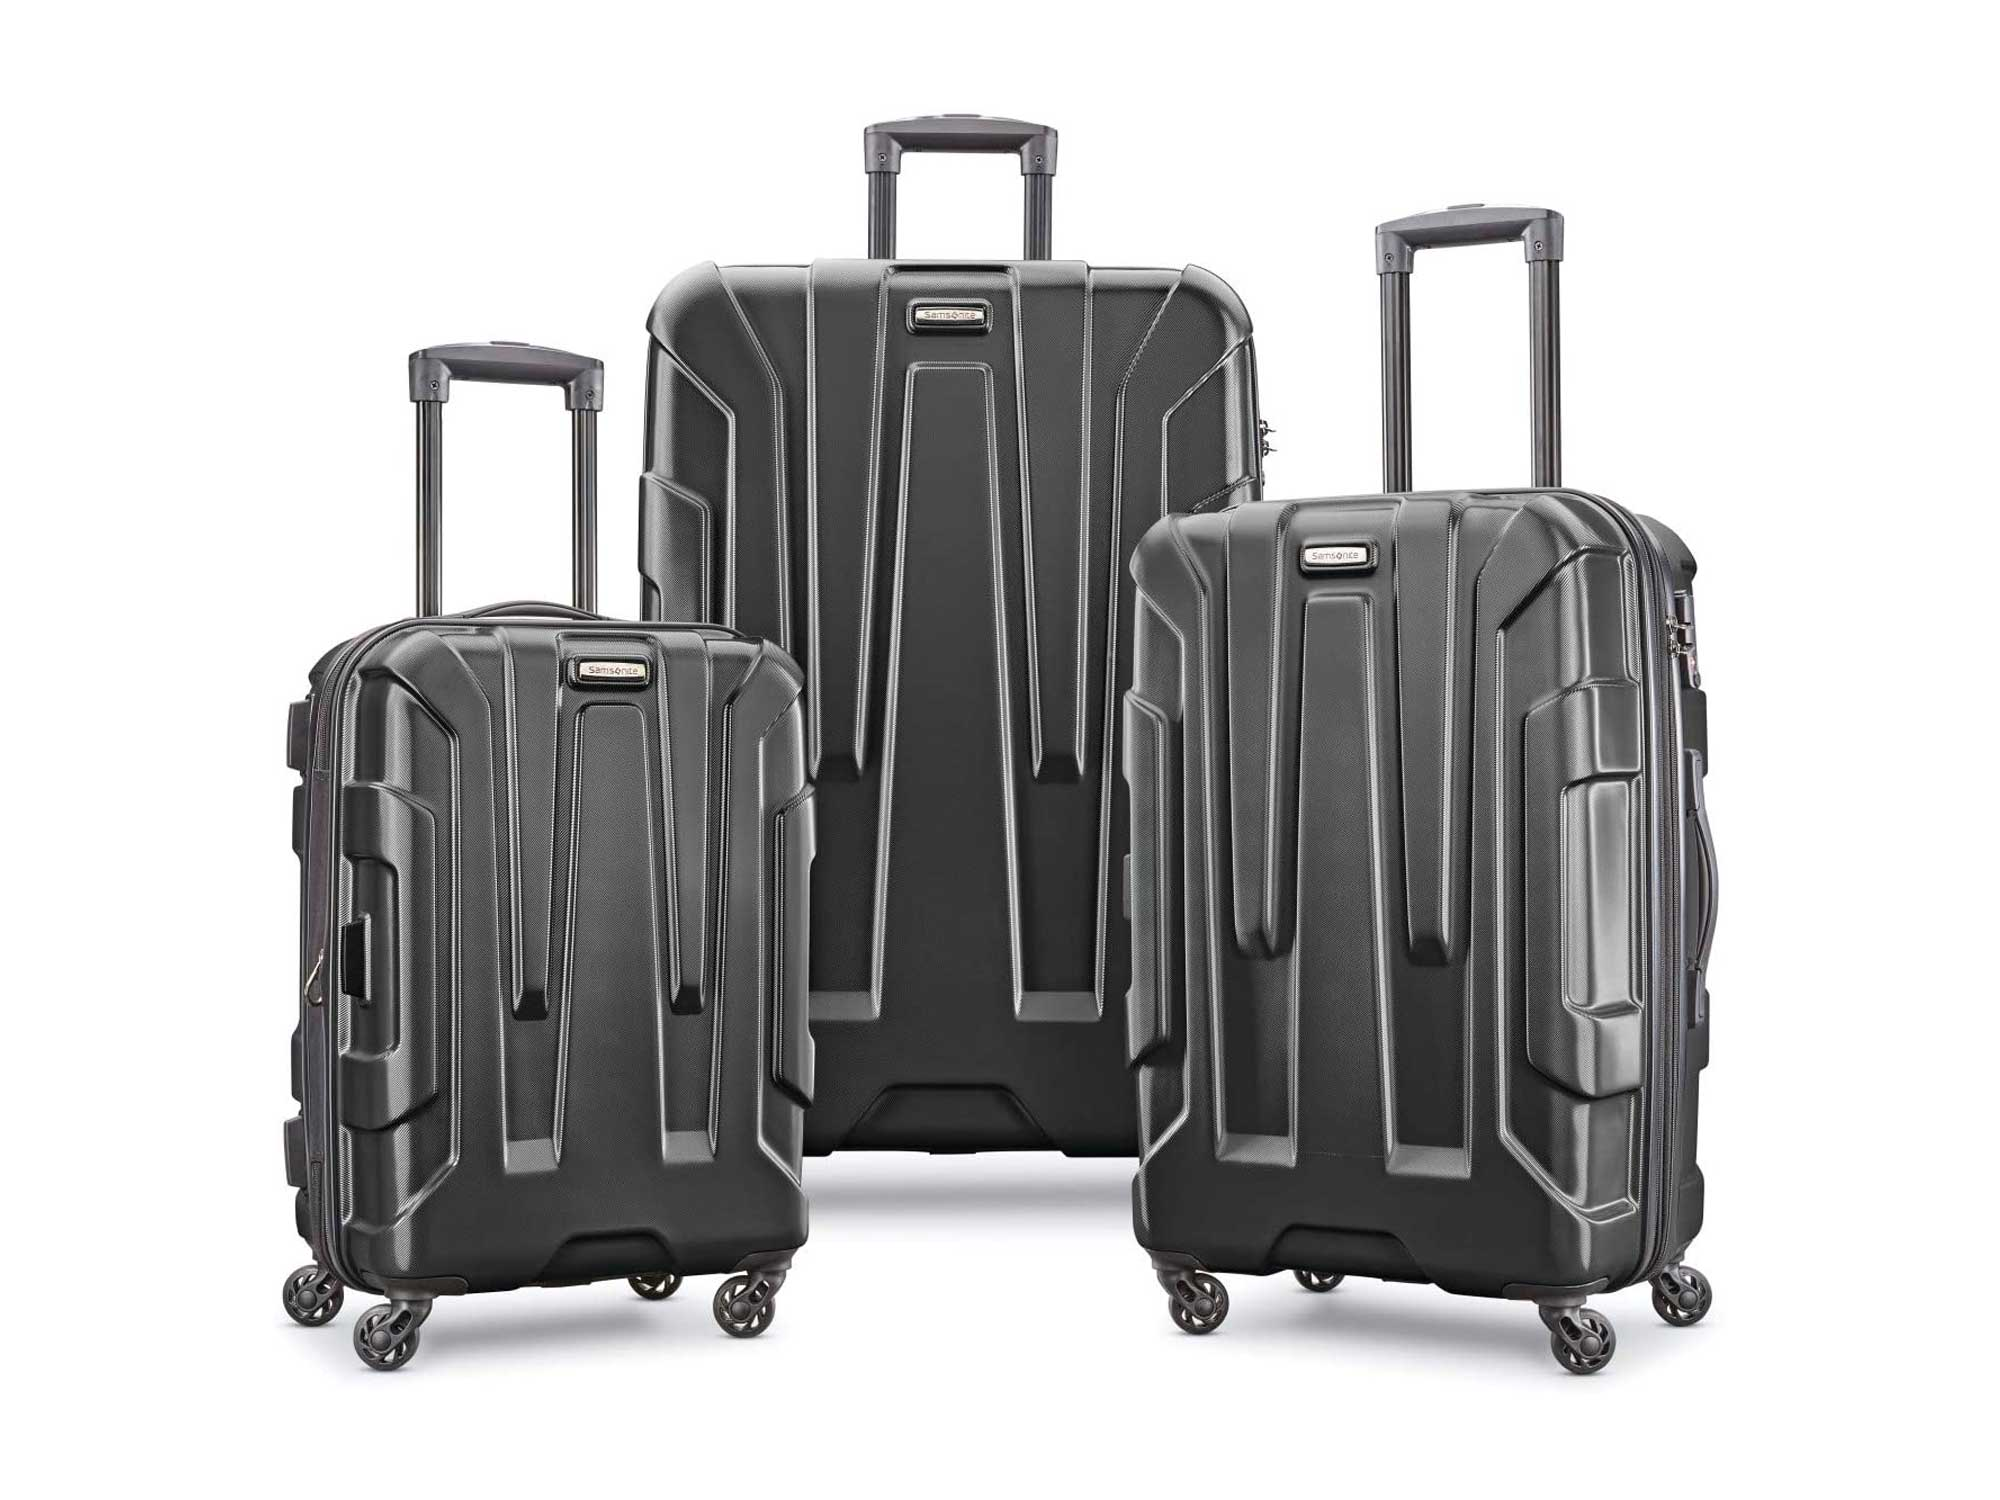 Samsonite Centric Hardside Expandable Luggage with Spinner Wheels, Black, 3-Piece Set